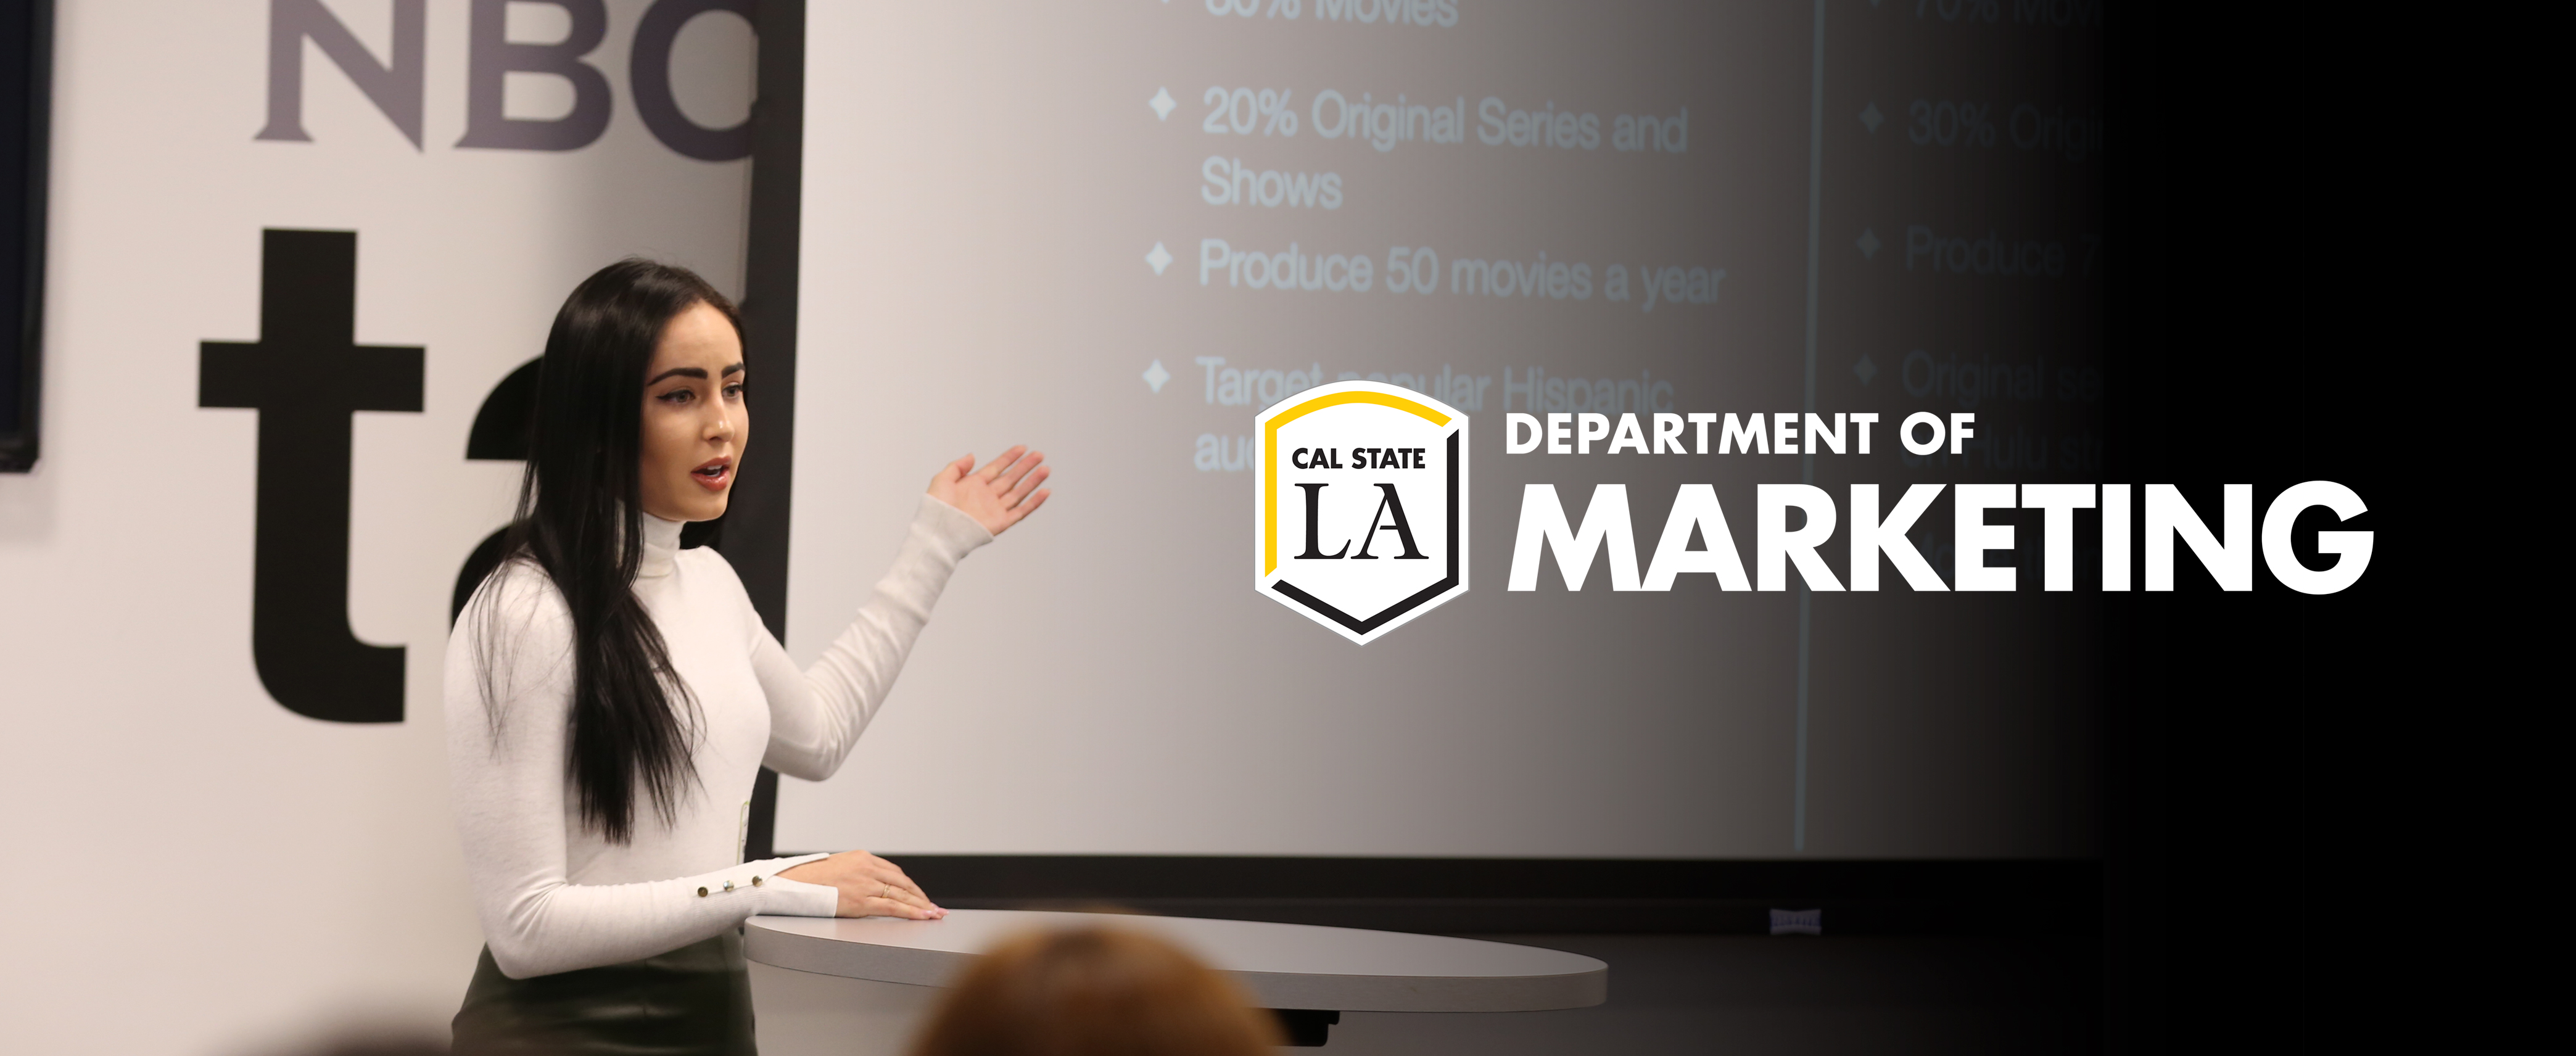 Cal State LA College of Business & Economics | Department of Marketing